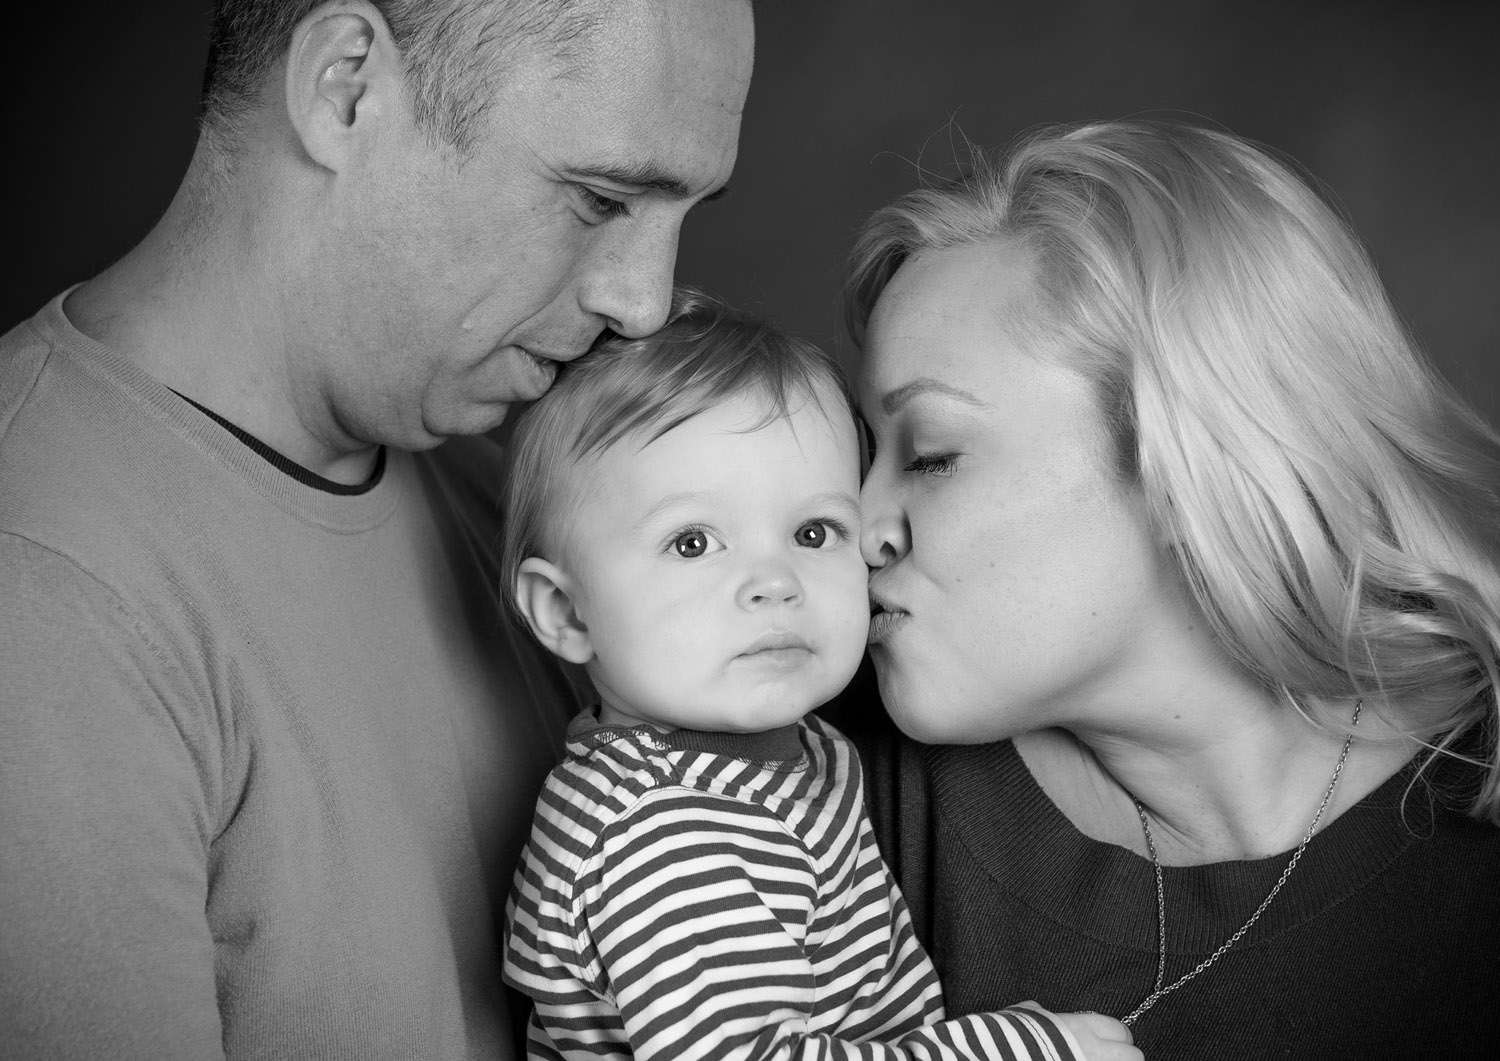 Toddler Portrait Photography Day Weds 19th of April